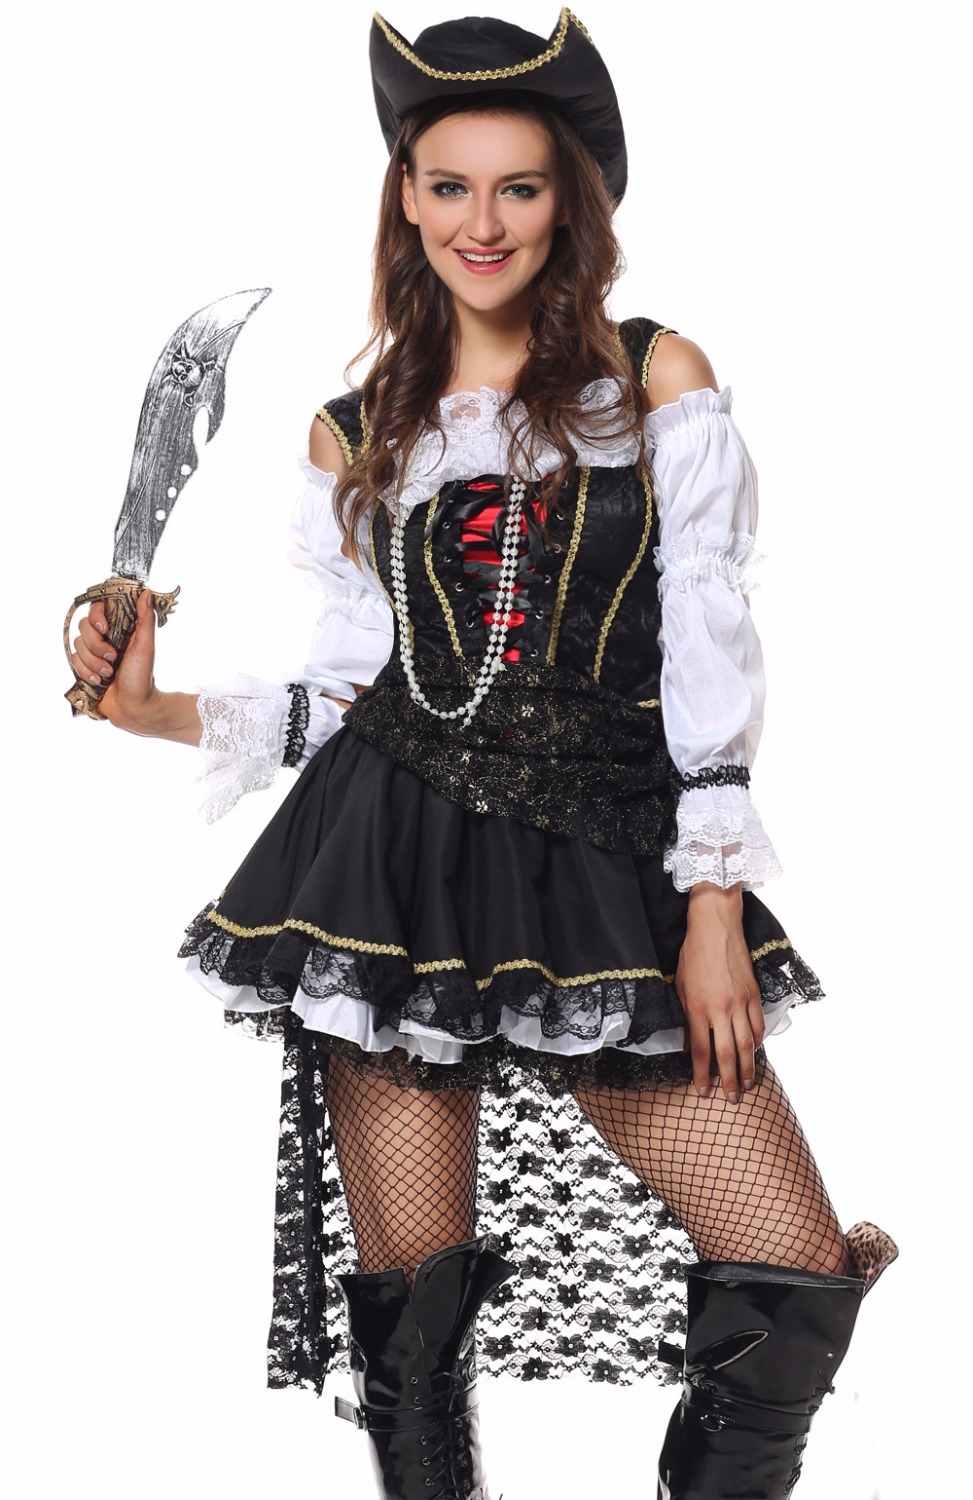 halloween costume for women pirate adult halloween costume female stage wear fantasy dress party pirate cosplay - Pirate Halloween Costumes Women